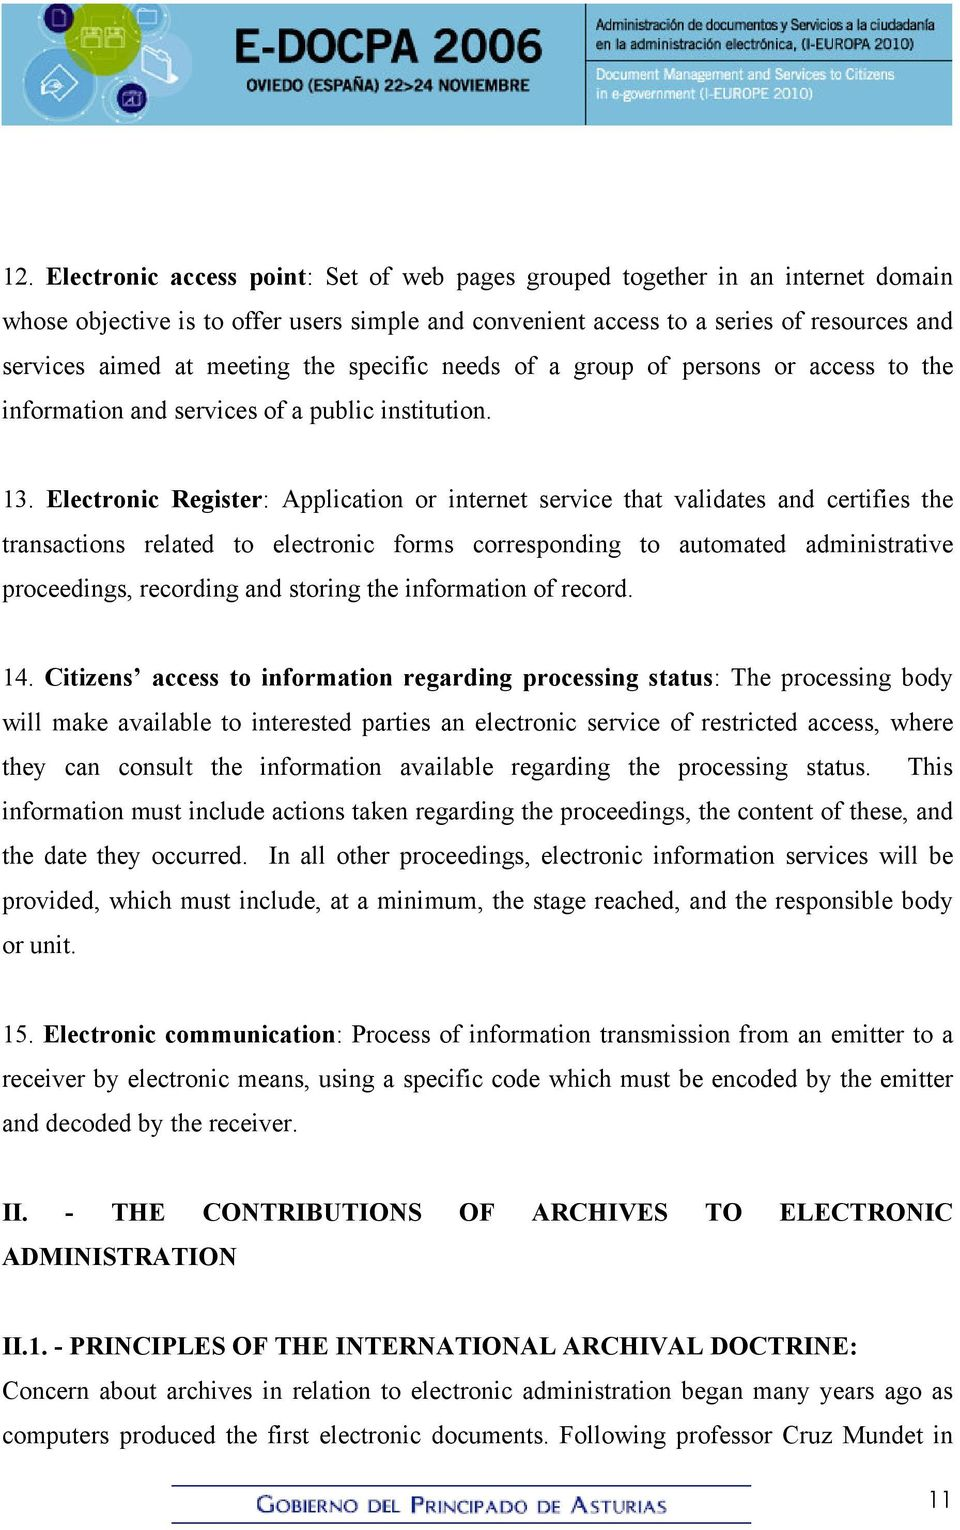 Electronic Register: Application or internet service that validates and certifies the transactions related to electronic forms corresponding to automated administrative proceedings, recording and